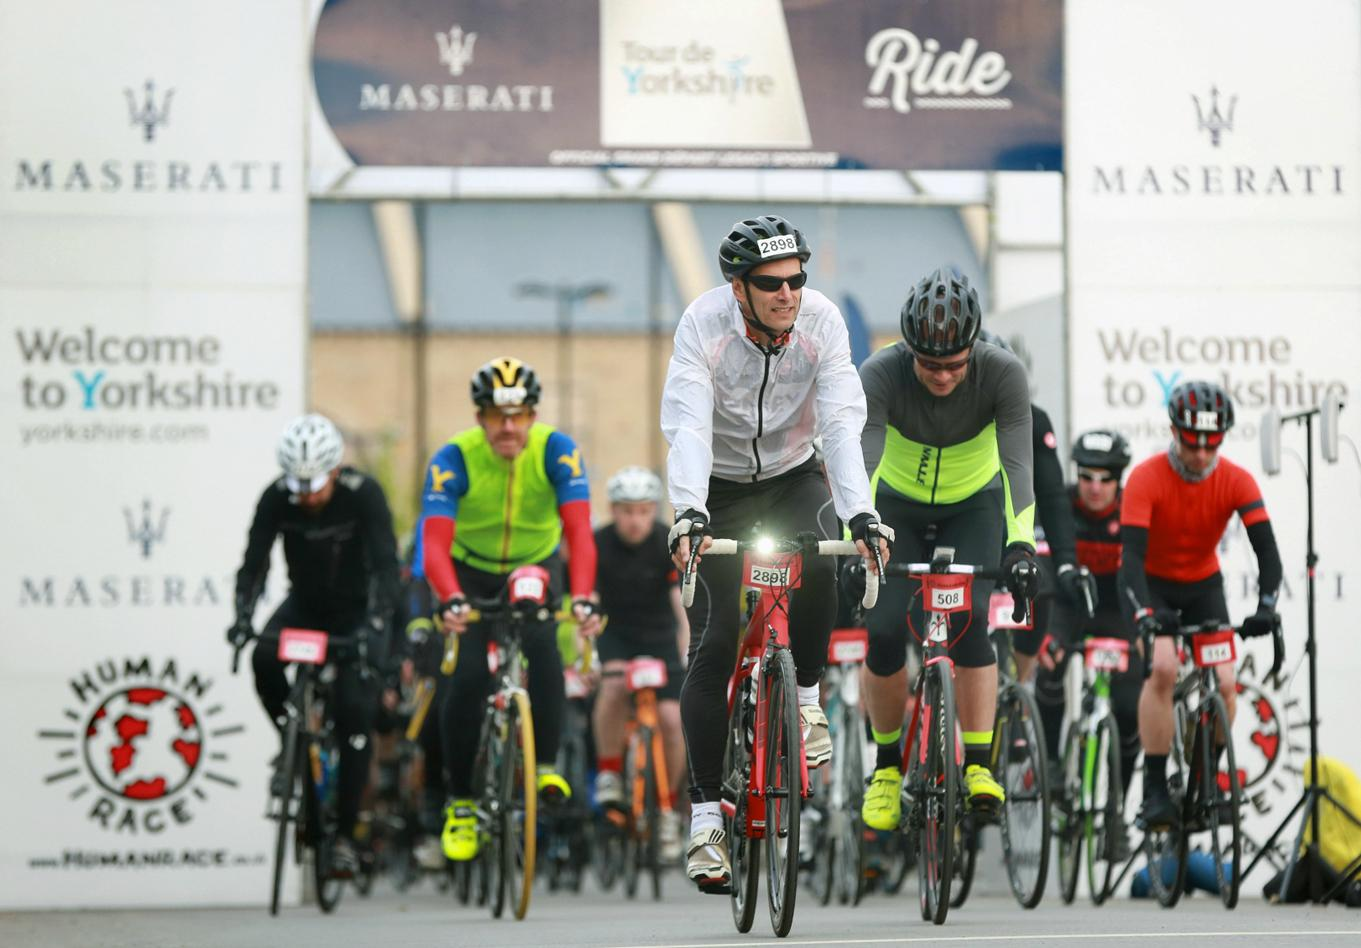 Picture of riders crossing the start line of a previous edition of the Maserati Tour de Yorkshire Ride